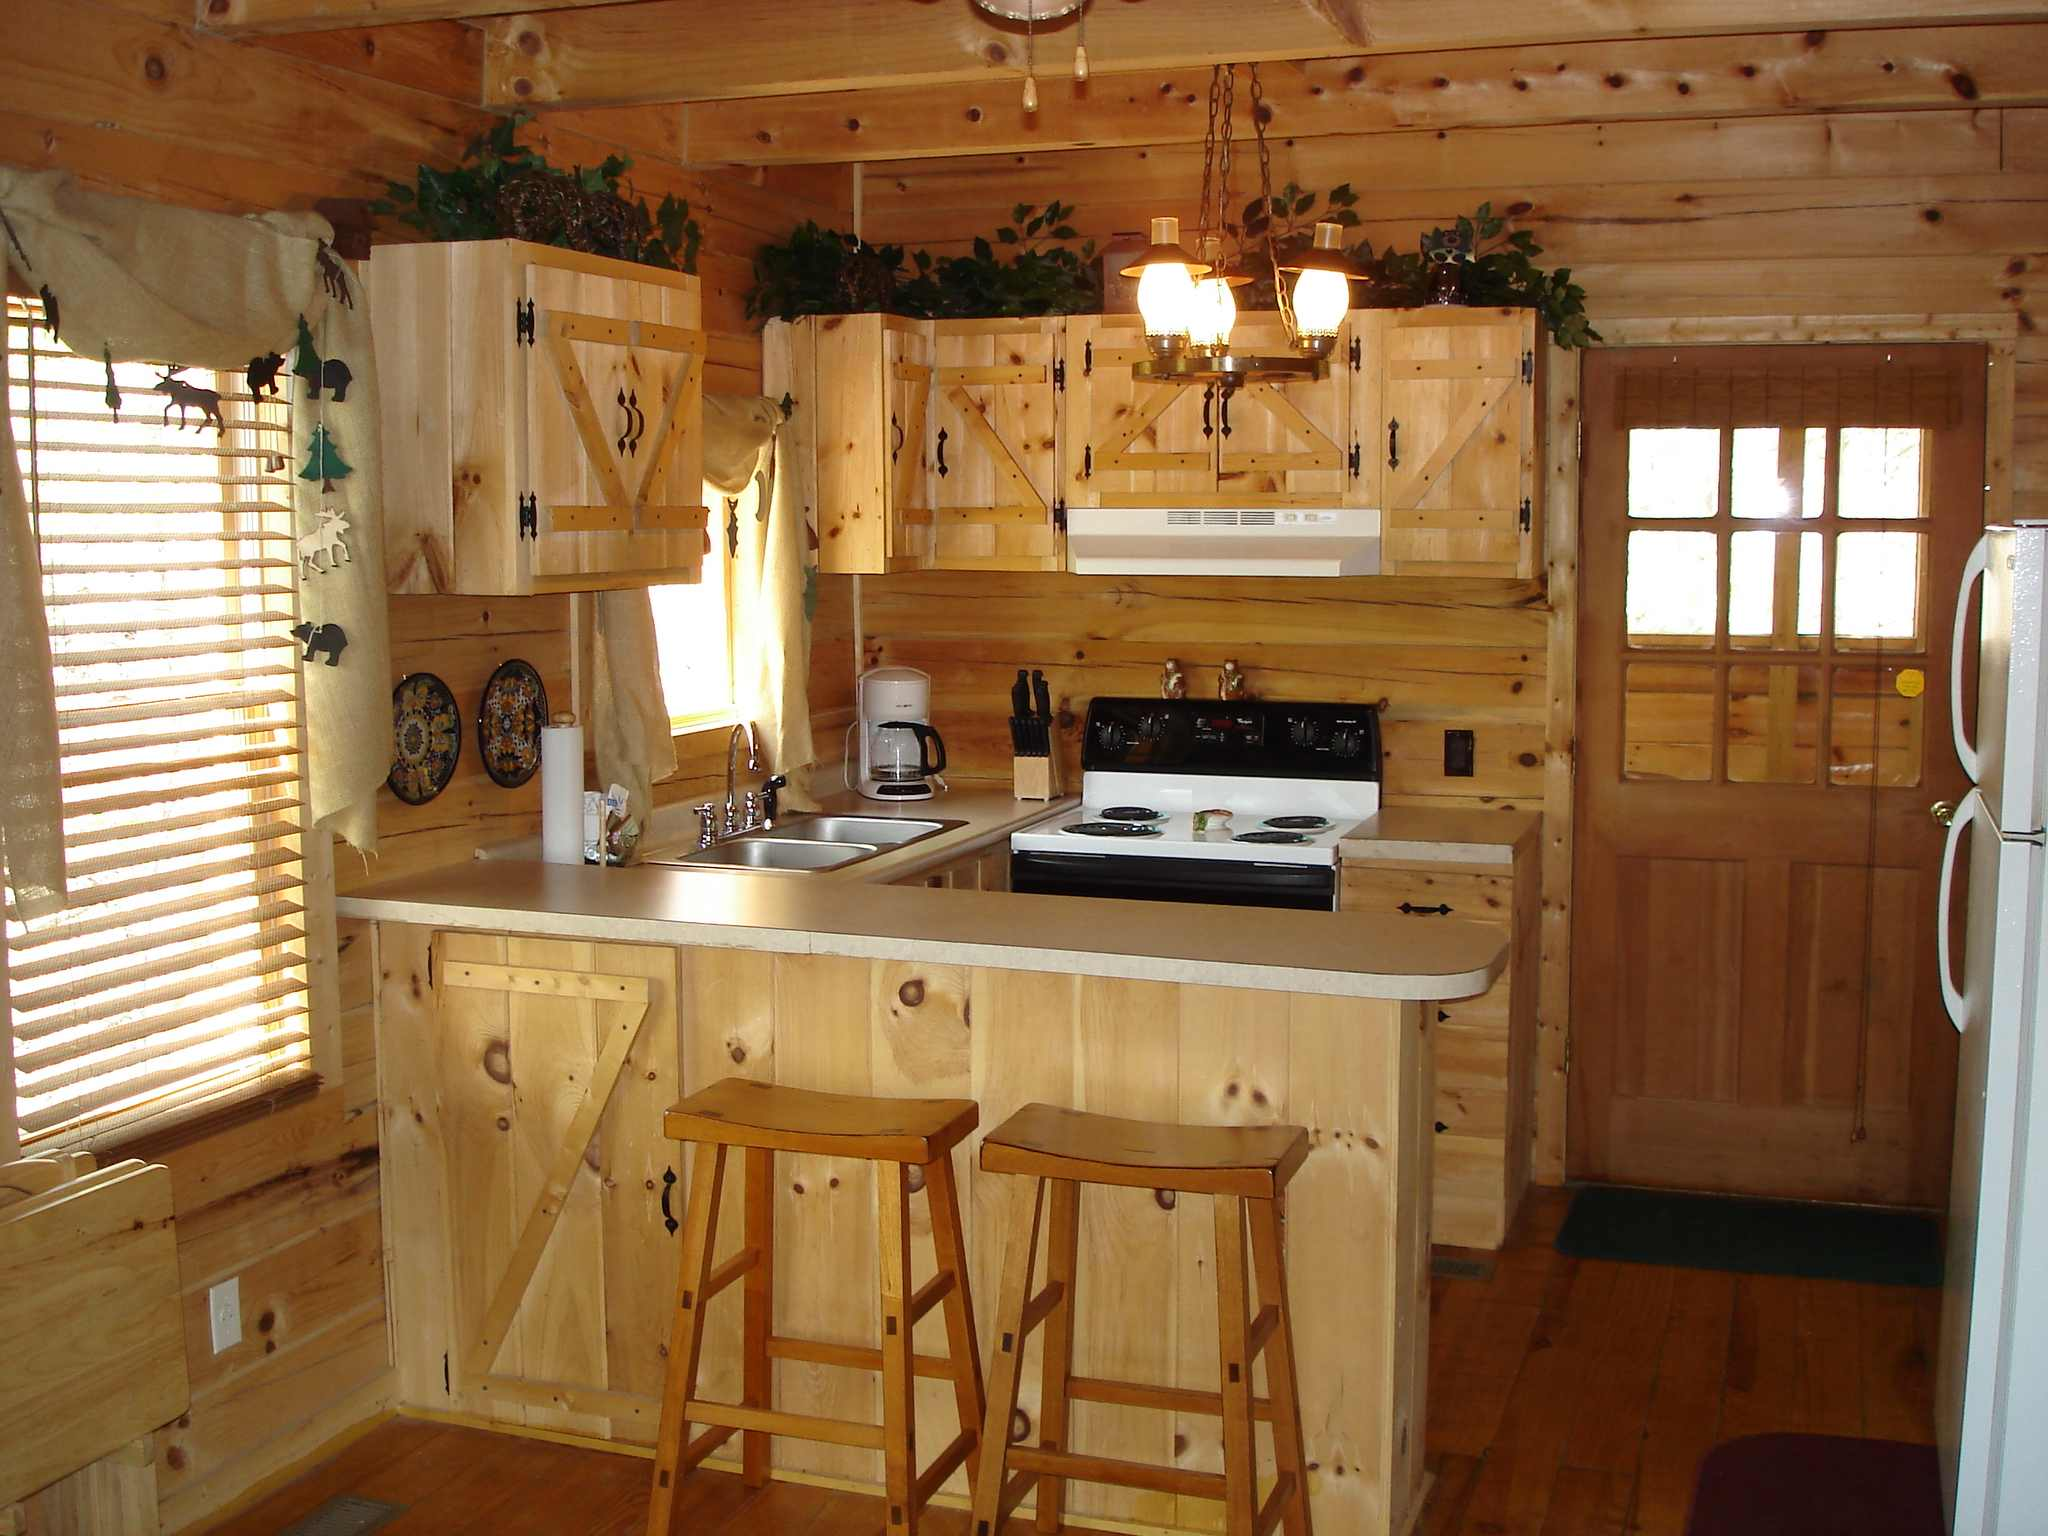 Kitchen remodel designs rustic kitchen photos Rustic kitchen designs